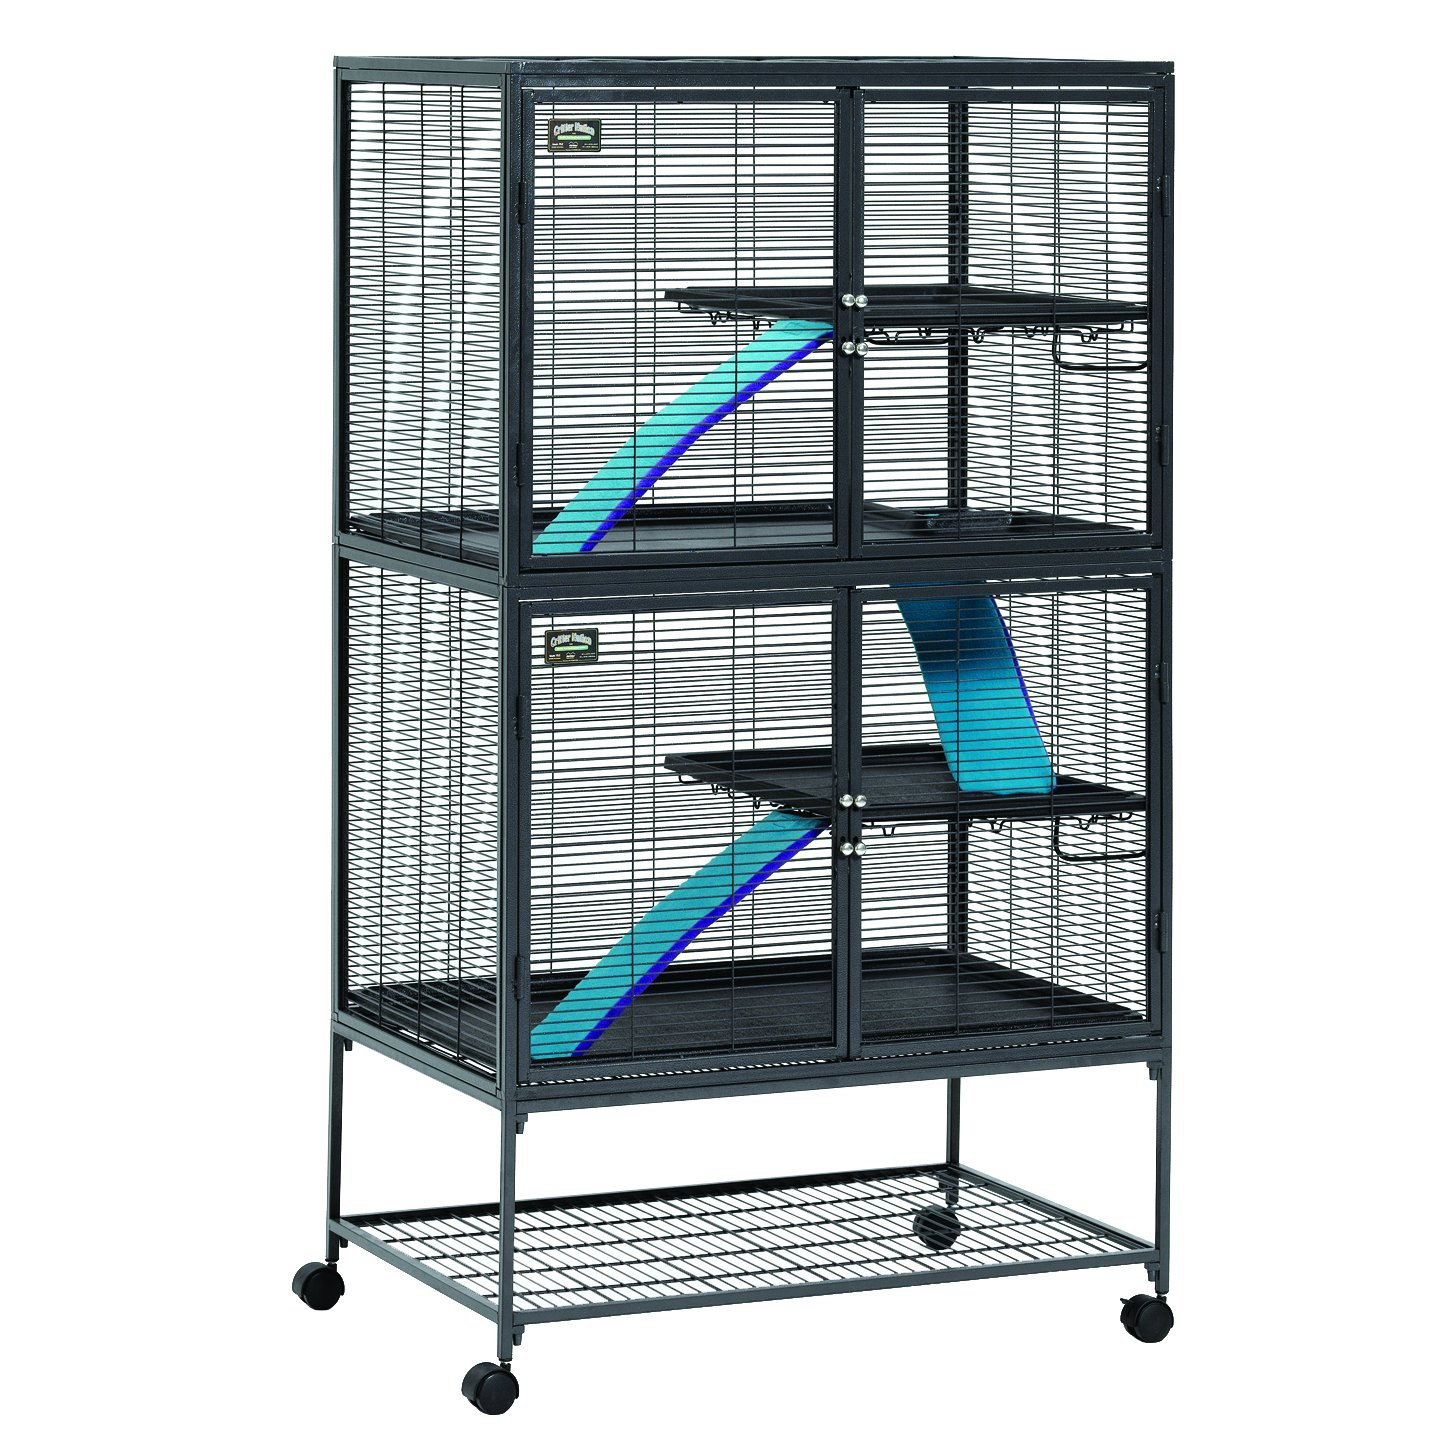 MidWest Deluxe Critter Nation Double Unit Small Animal Cage (Model 162) Includes 2 leak-Proof Pans, 2 Shelves, 3 Ramps w/ Ramp Covers & 4 locking Wheel Casters, Measures 36''L x 24''W x 63''H Inches, Ideal for Dagus, Rats, Ferrets, Sugar Gliders by MidWest Homes for Pets